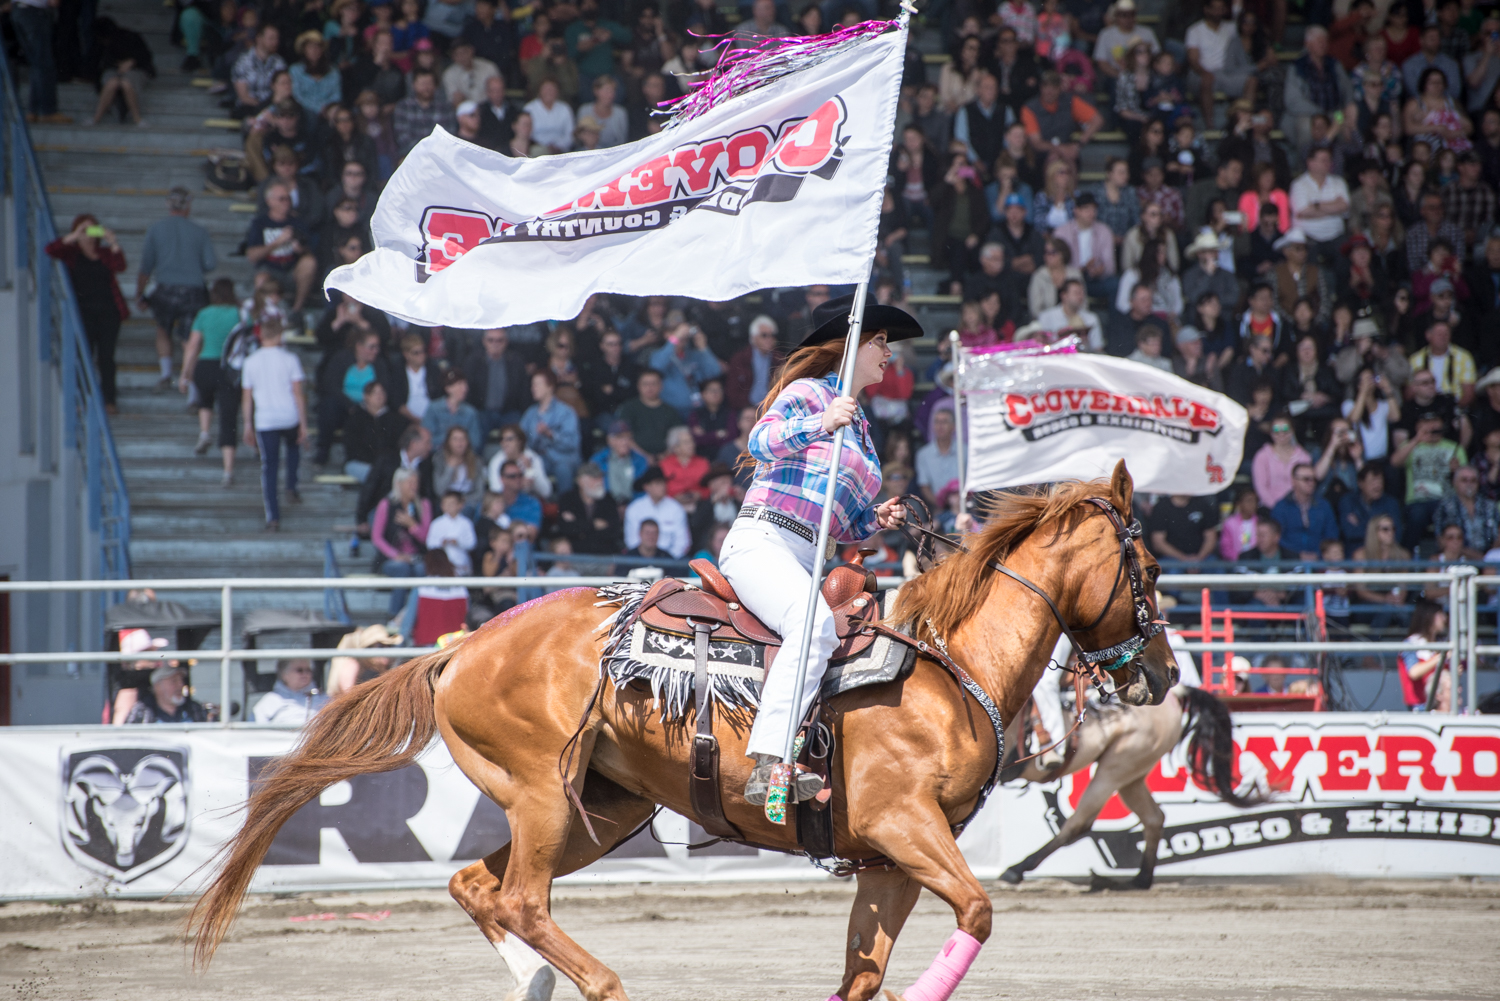 Image: Cloverdale Rodeo and Country Fair